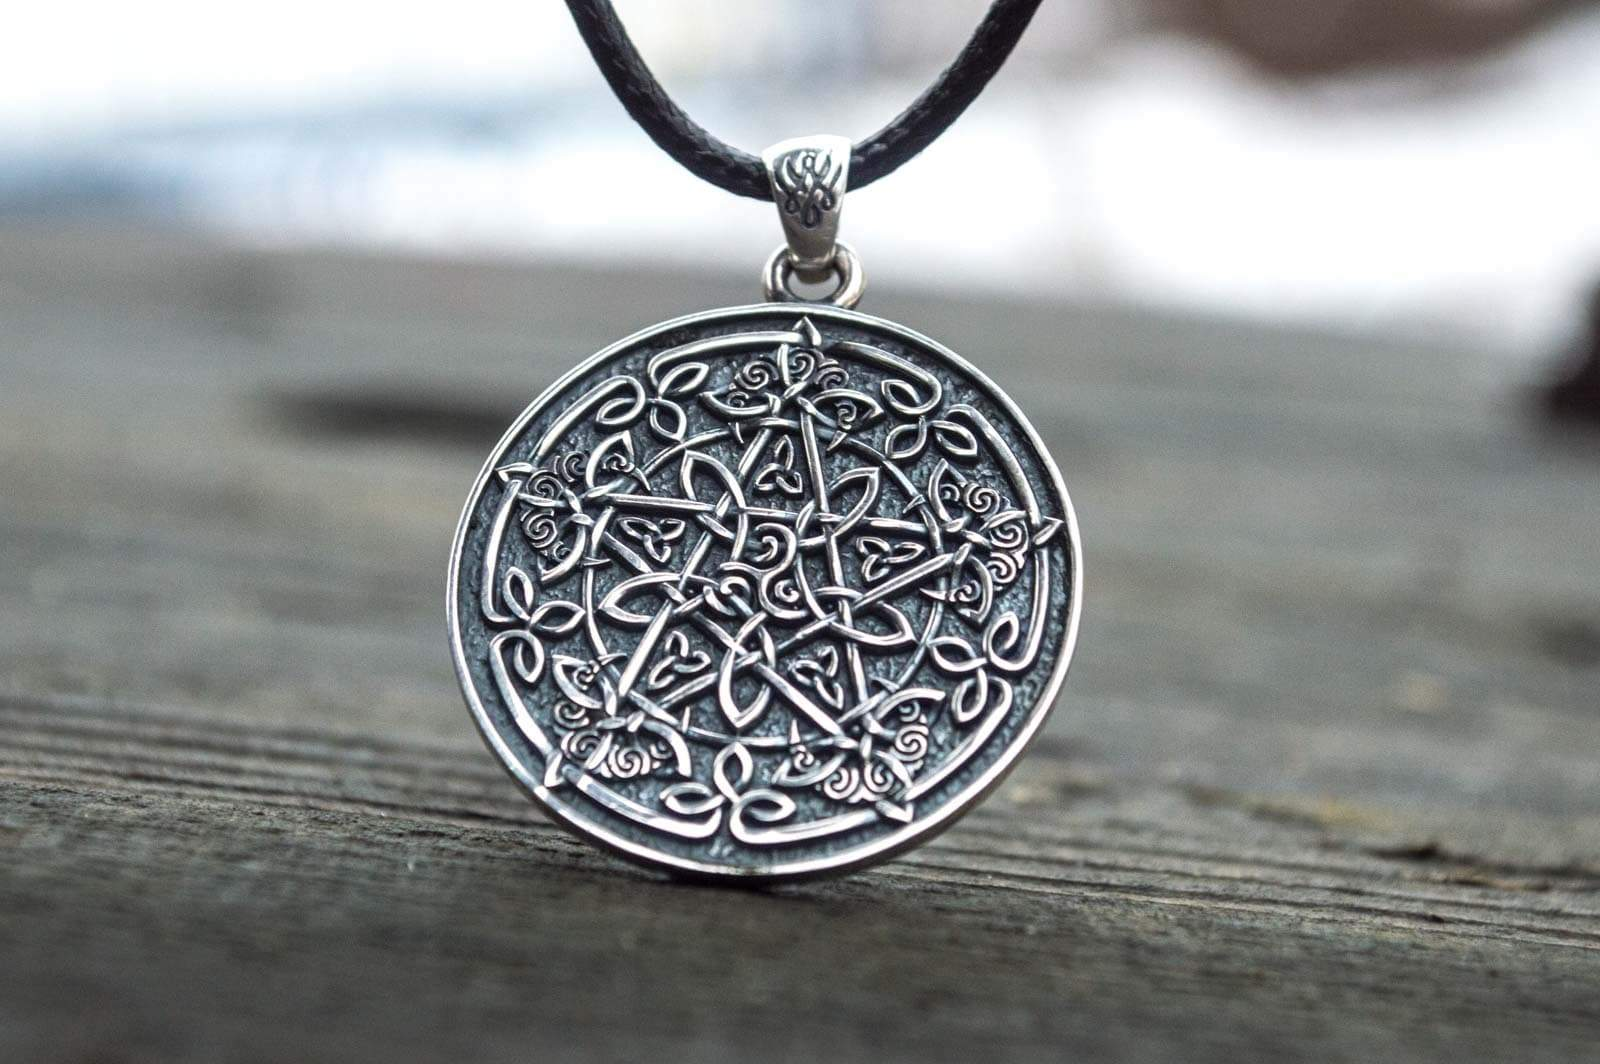 Pendants & Necklaces Wiccan Sterling Silver Pentagram Necklace with Ornament Ancient Treasures Ancientreasures Viking Odin Thor Mjolnir Celtic Ancient Egypt Norse Norse Mythology